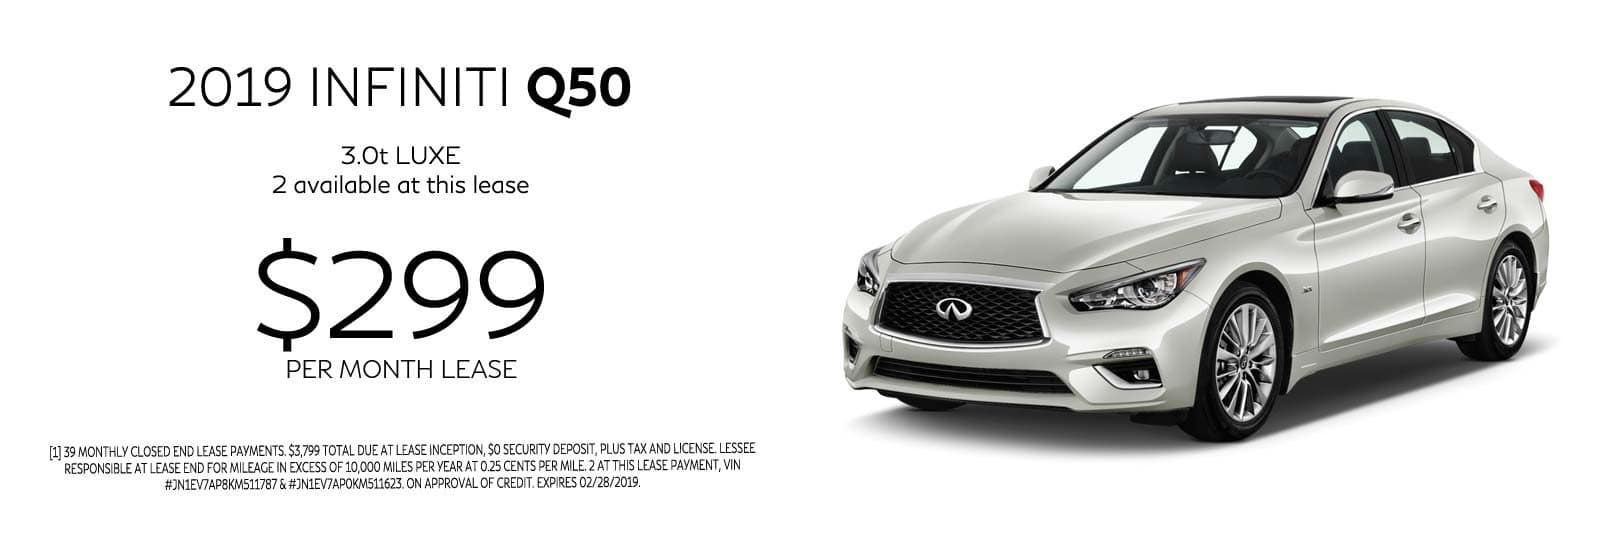 Q50 LUXE OFFER